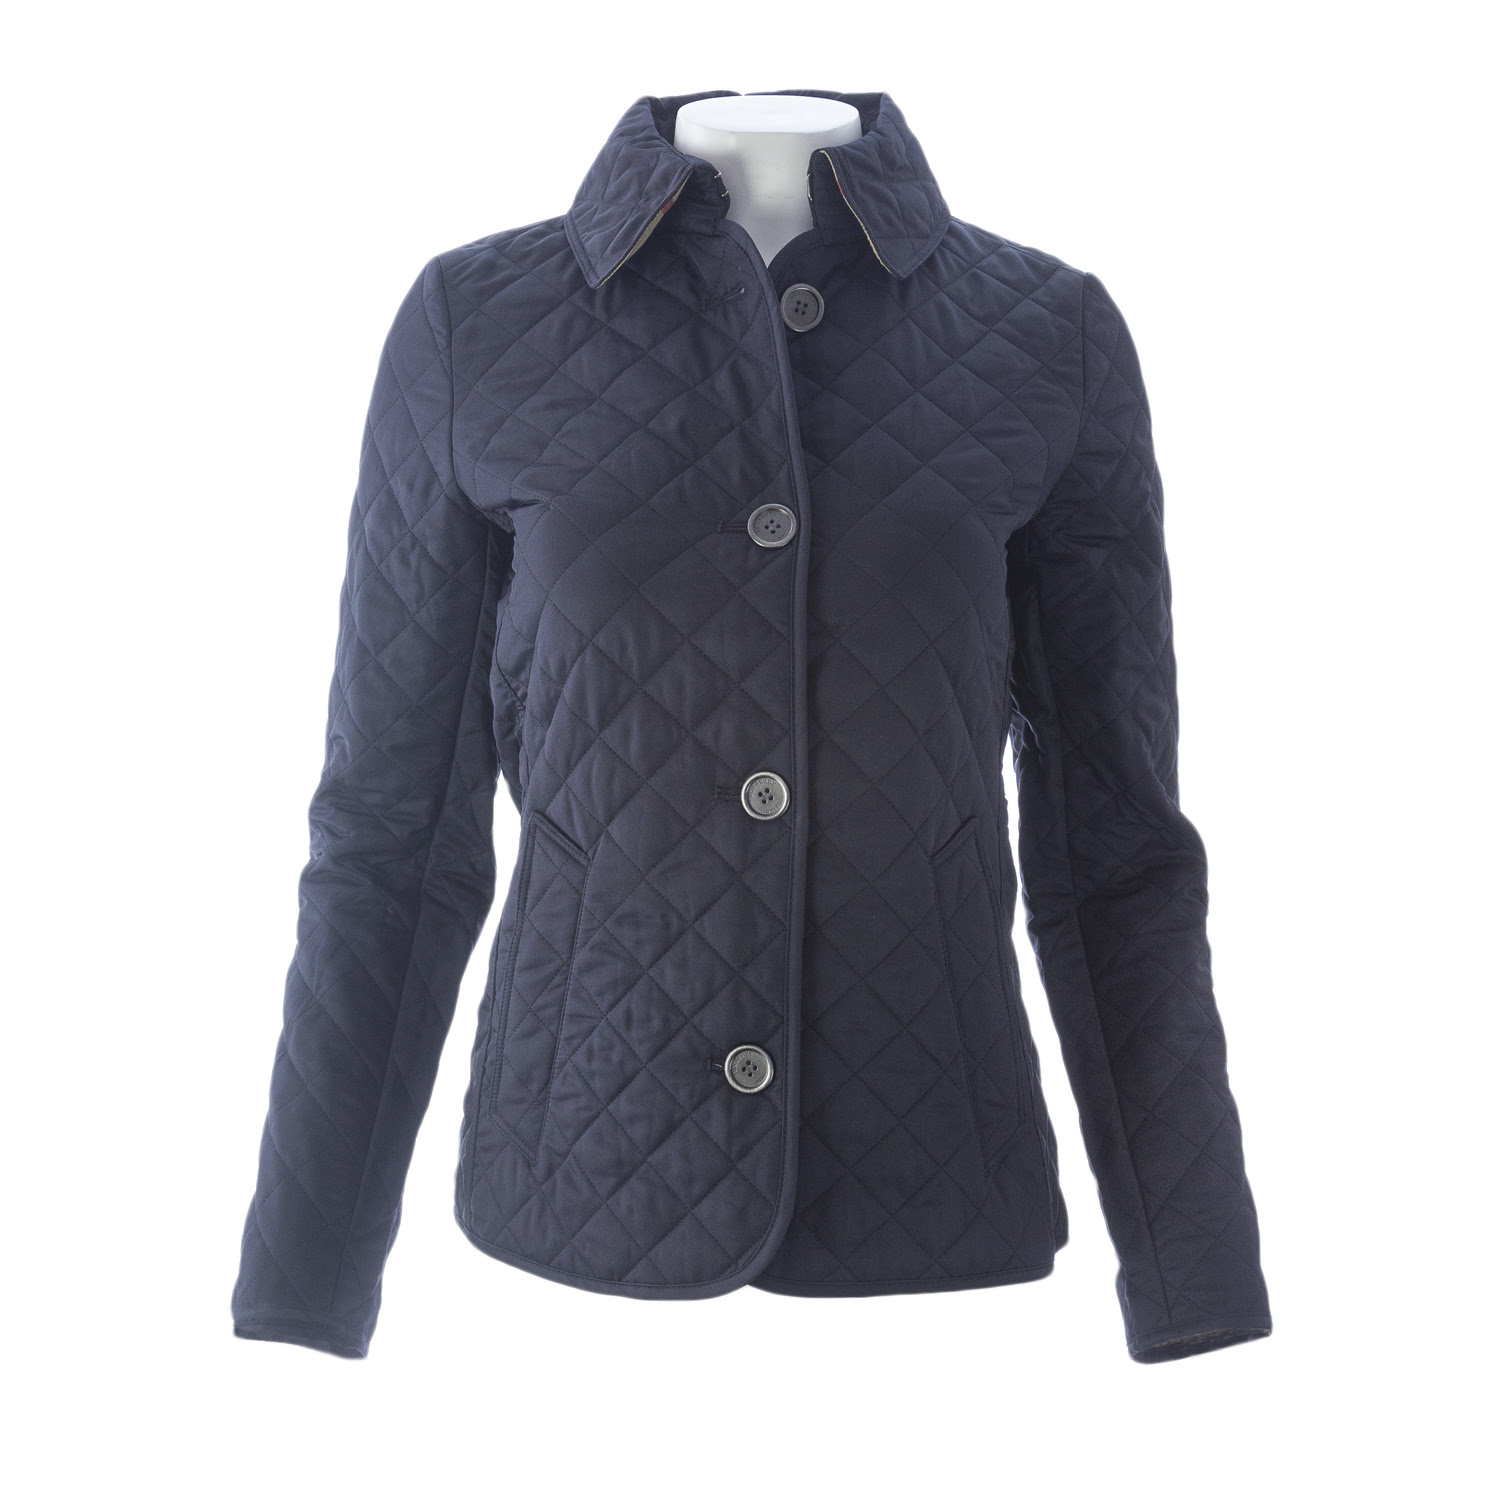 Design with for coats sizes quilted burberry sears plus women plus size girls